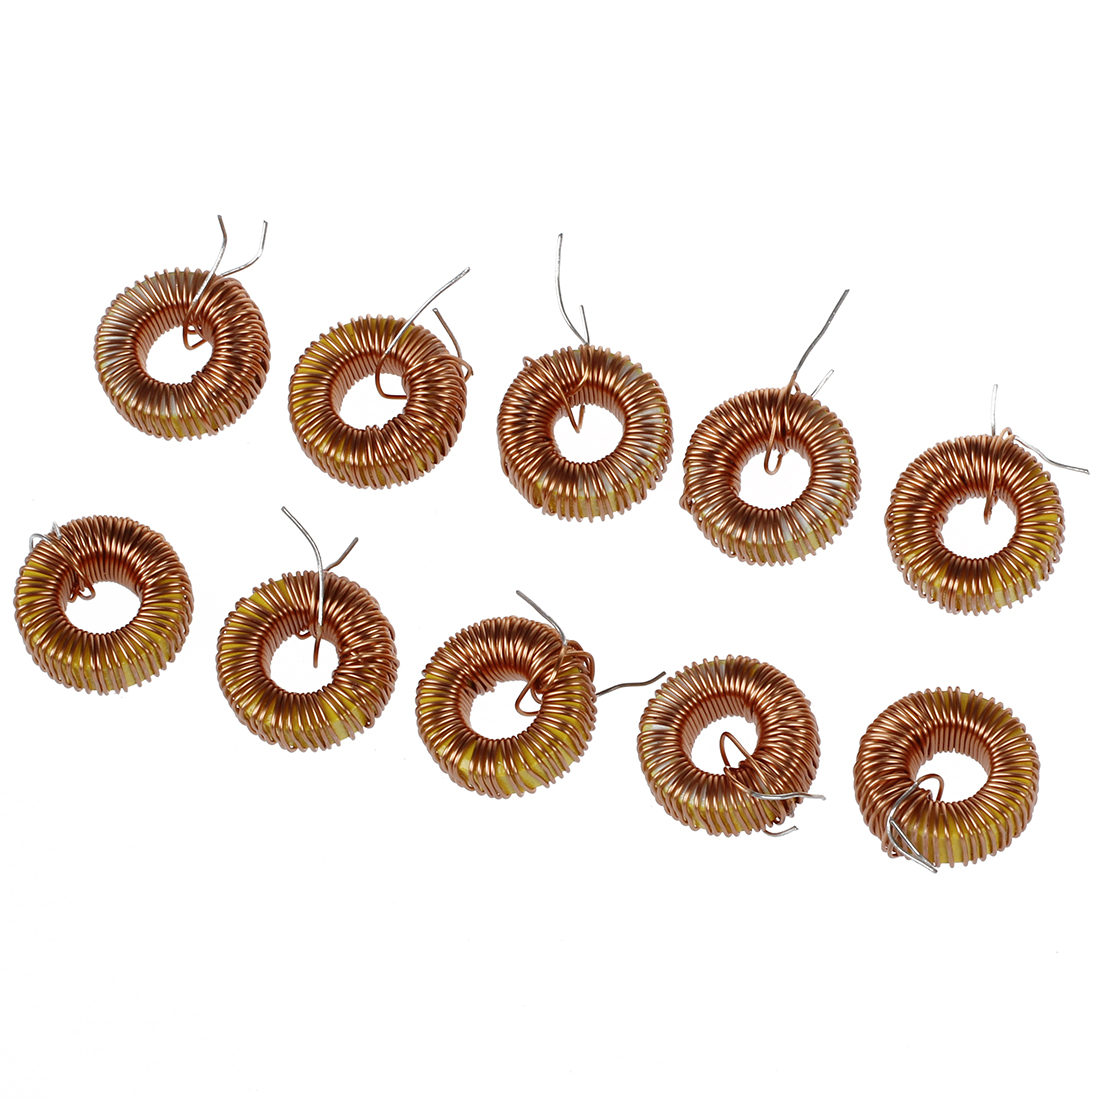 5pcs/lot Toroid <font><b>Inductor</b></font> 3A Winding Magnetic Inductance 3A 22uH 33uH 47uH 56UH <font><b>100uH</b></font> 220uH 330uH 470uH <font><b>Inductors</b></font> For LM2596 image